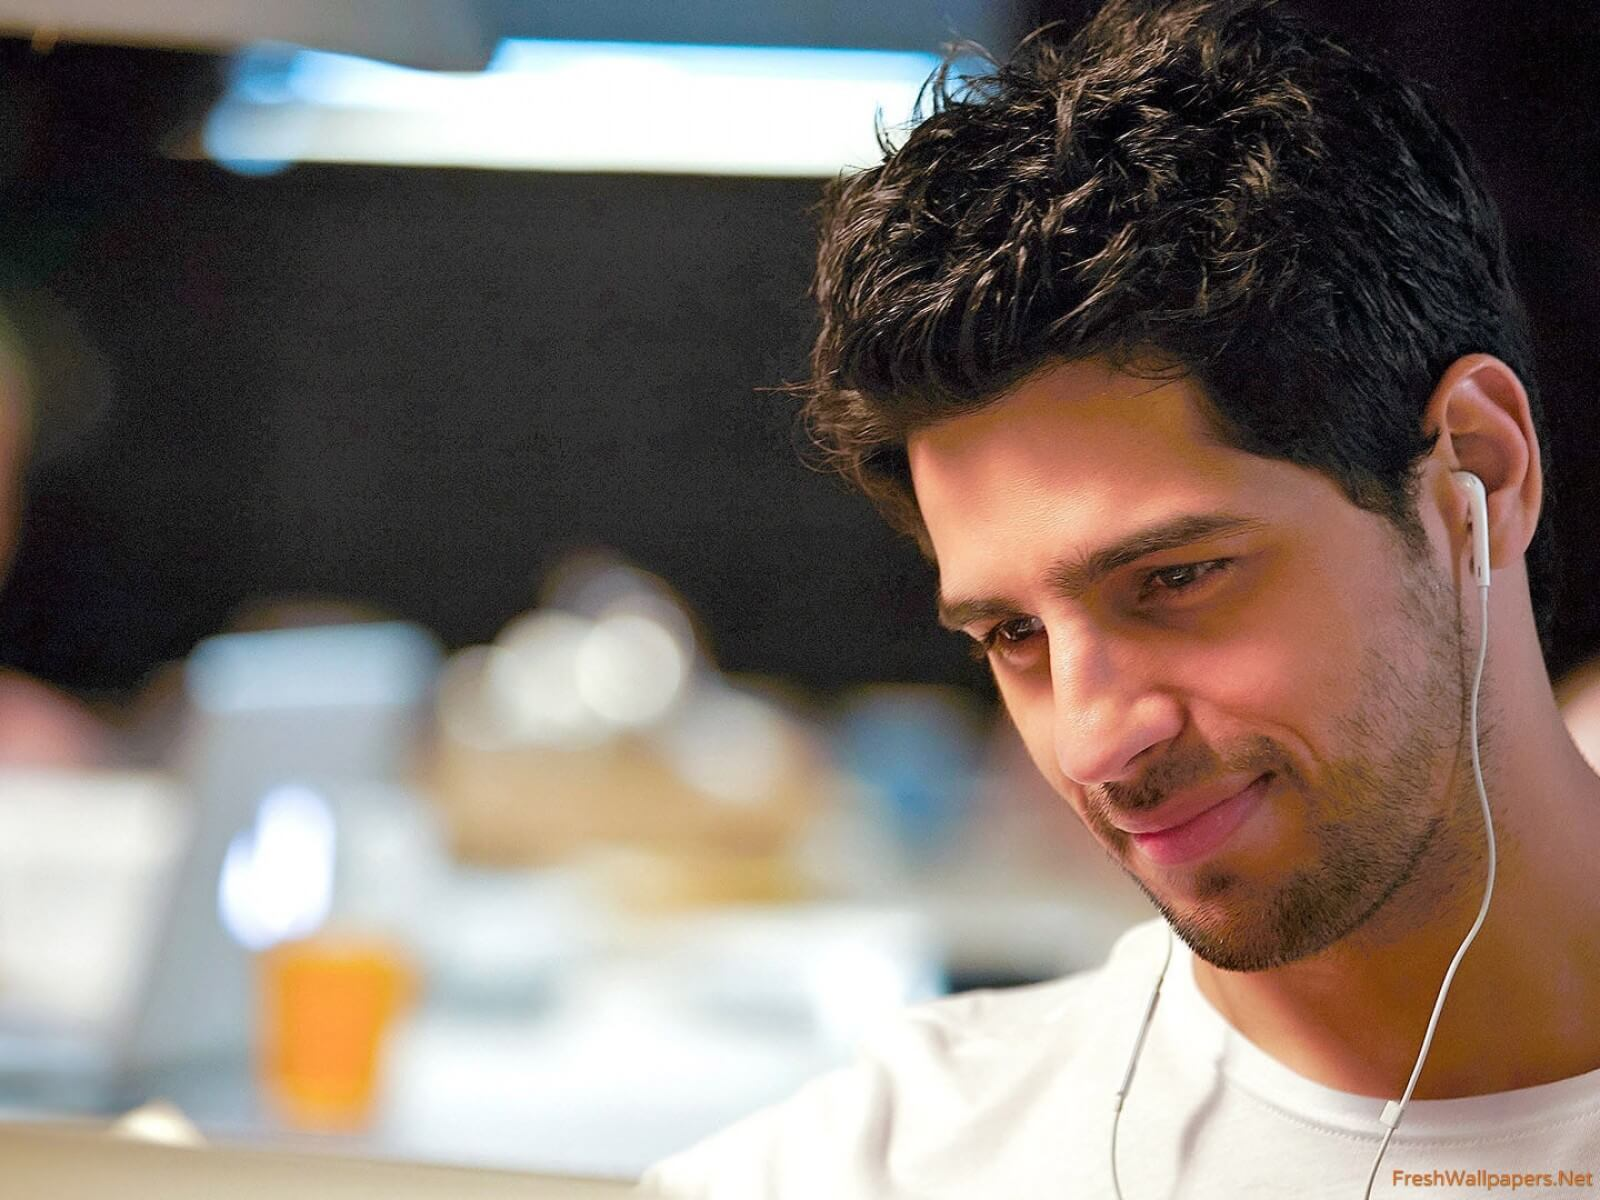 Sidharth Malhotra Movies, Height, Age, Photos, Birth Date, Biography, Girlfriend, Family, Hairstyle, Education, Details, Net Worth, Awards, Wiki, Instagram, Facebook, Imdb, Twitter (13)